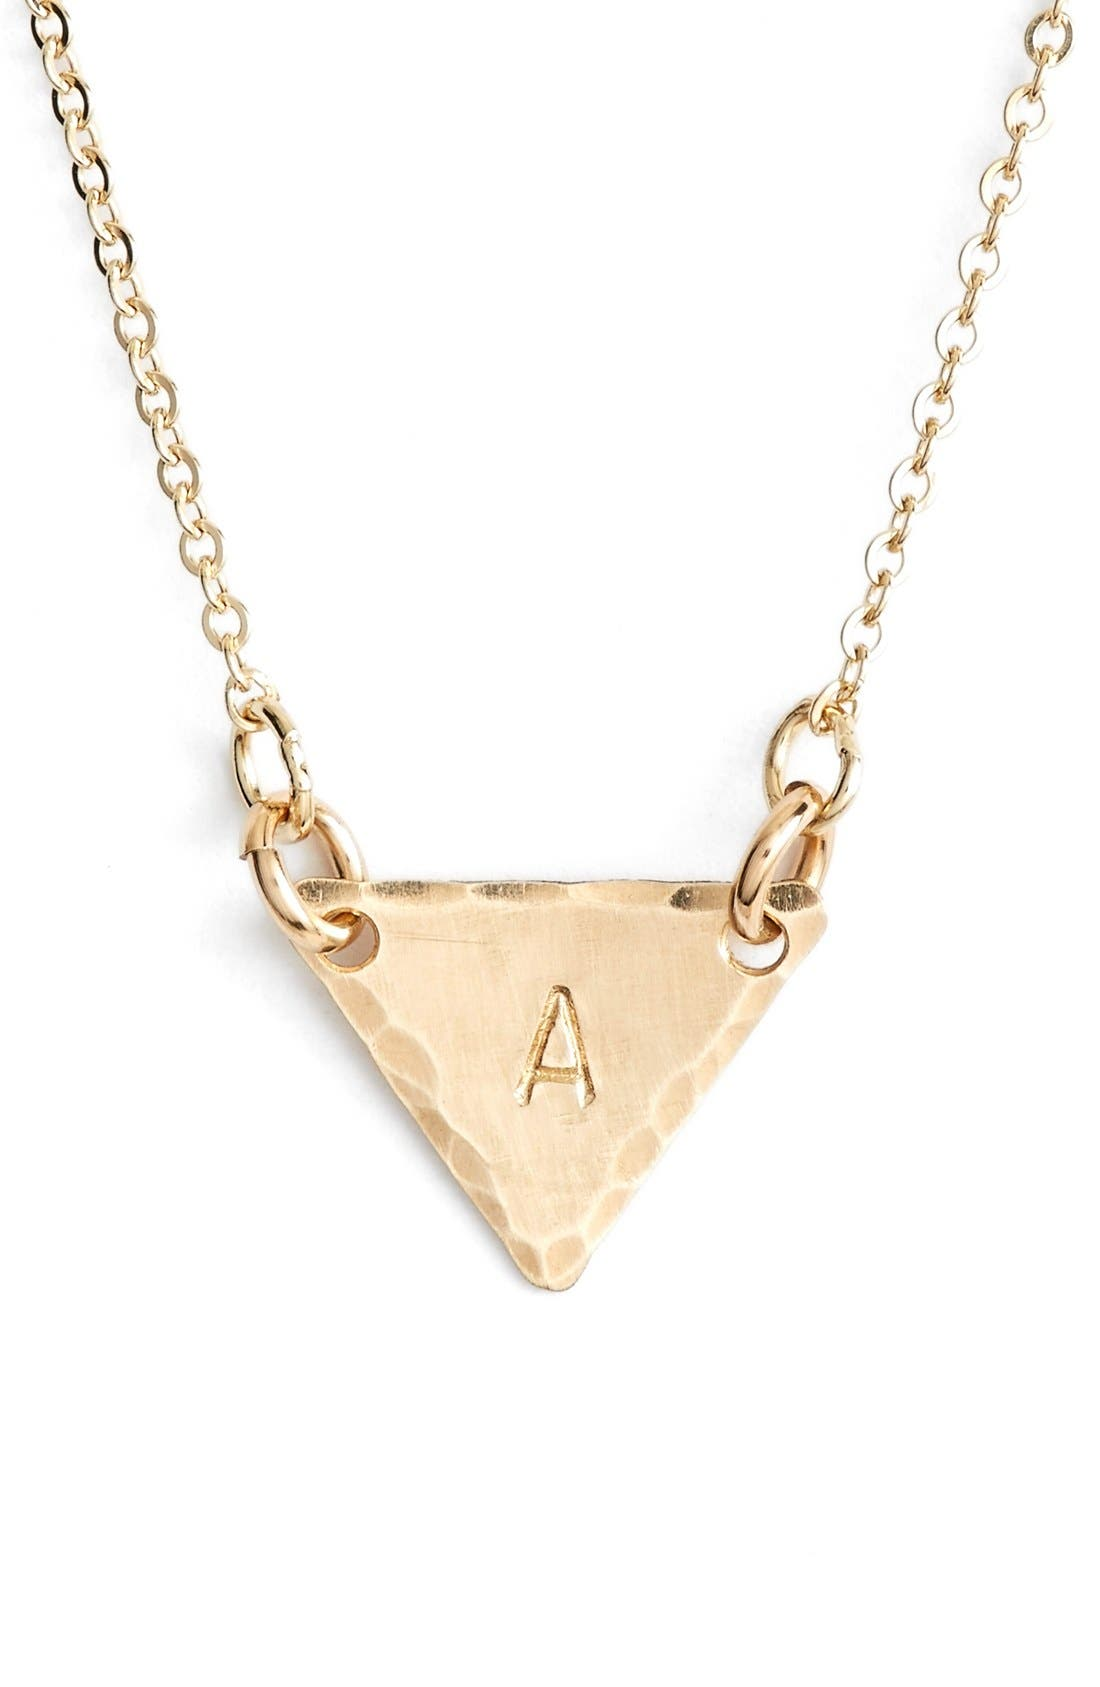 14k-Gold Fill Initial Triangle Necklace,                             Main thumbnail 1, color,                             710